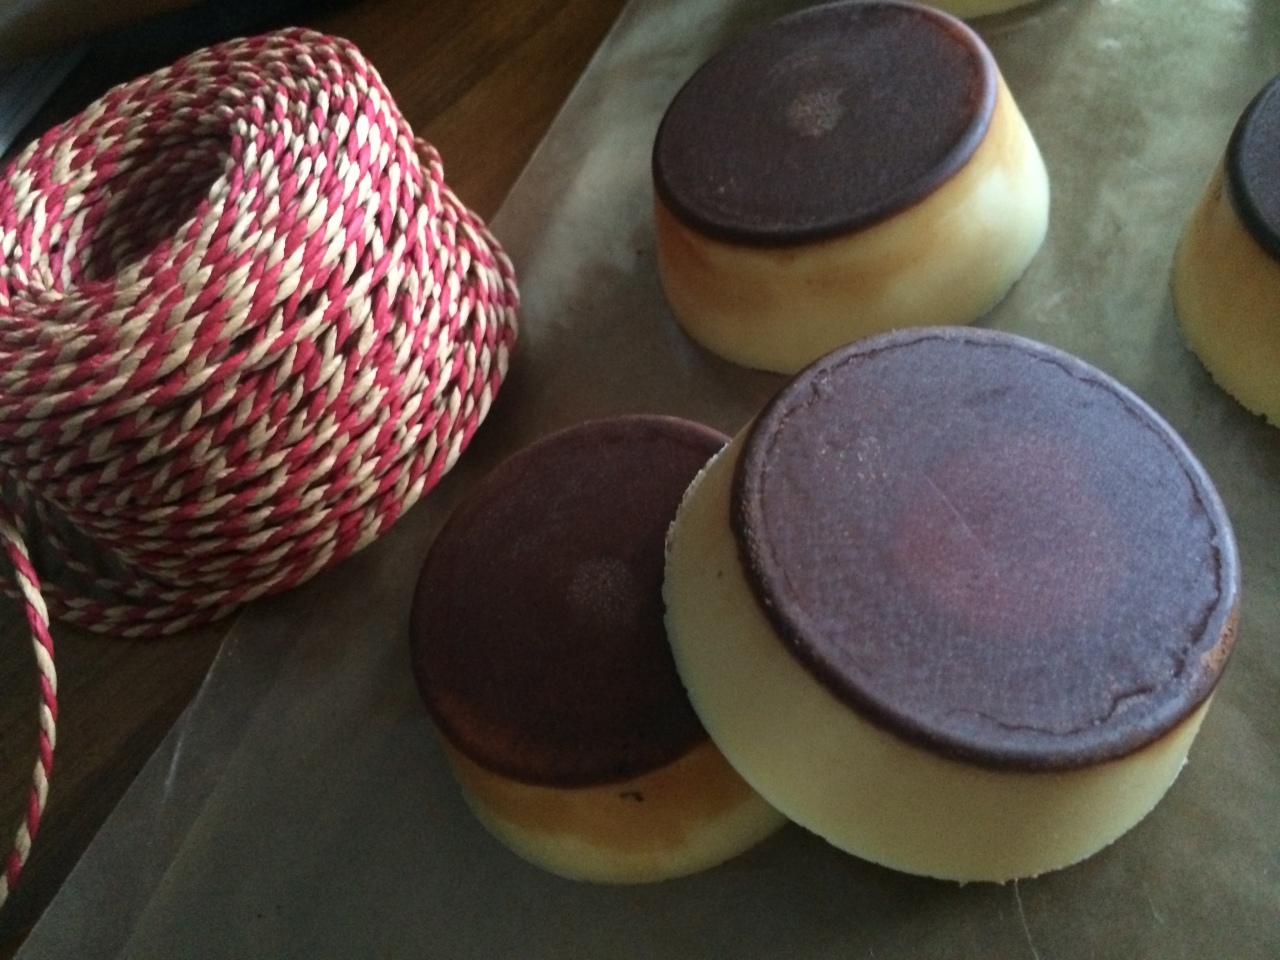 Coconut oil and beeswax lotion bars